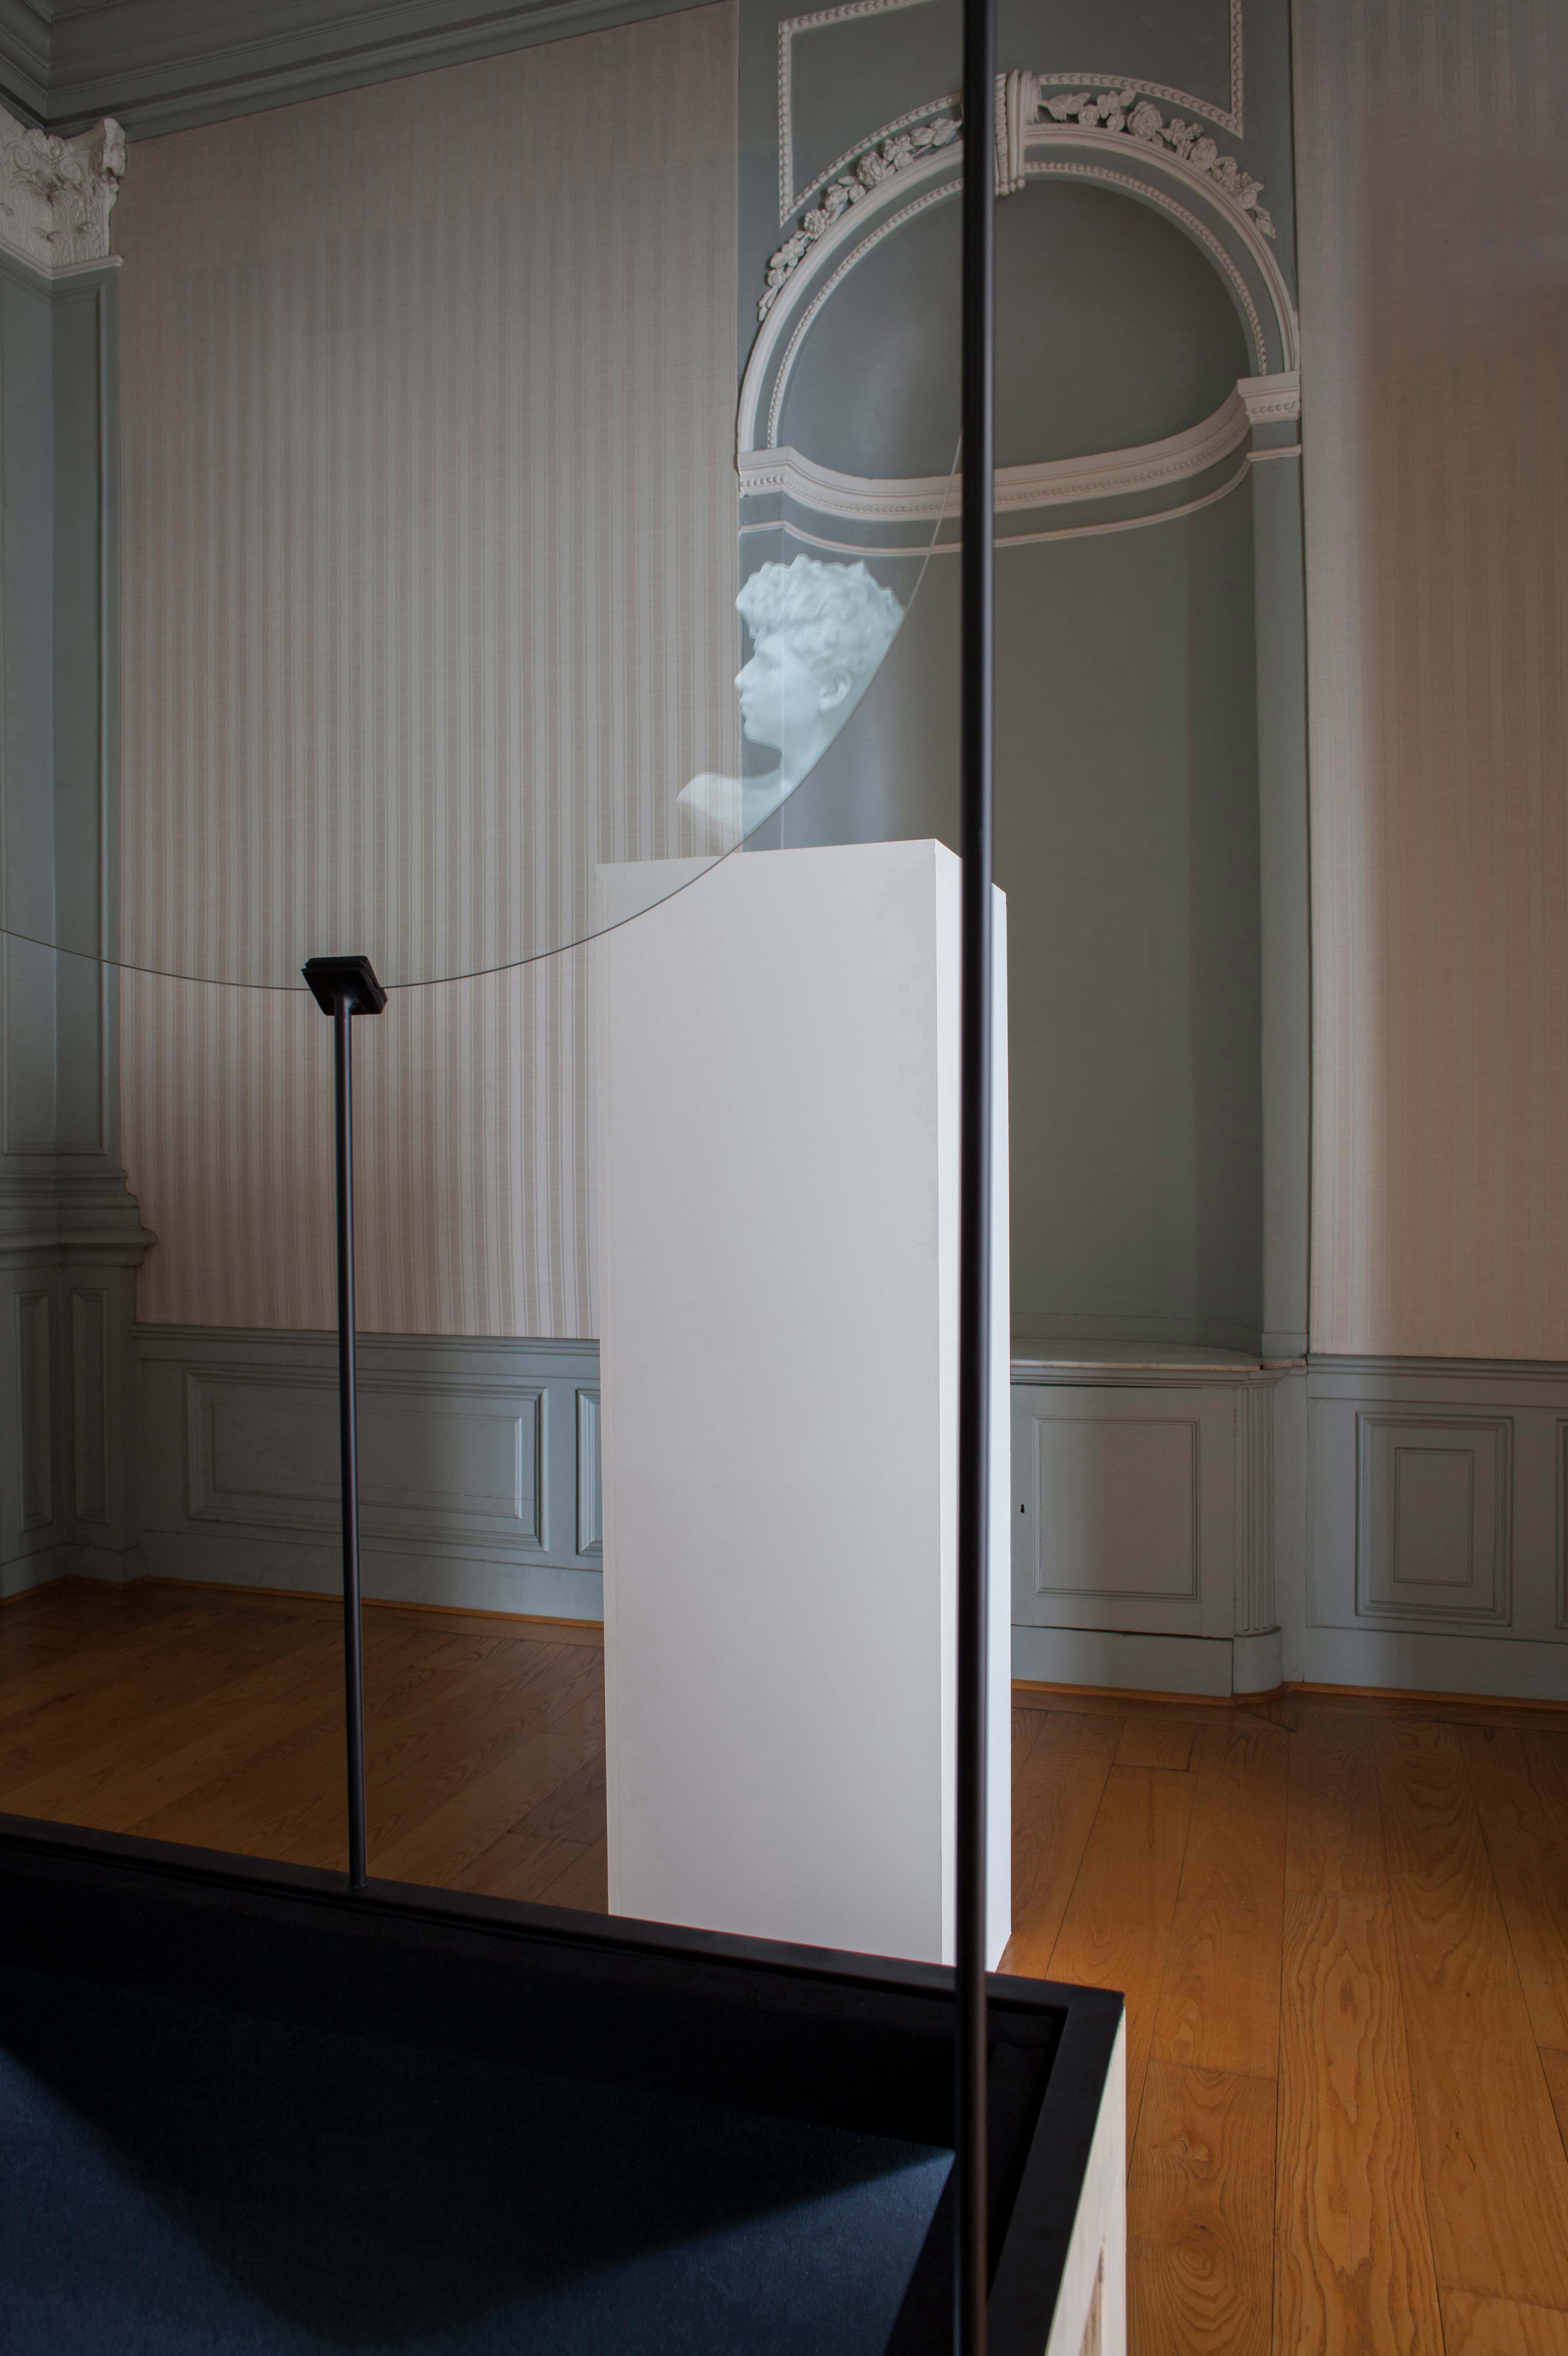 Fantoom is a museum exhibition where the artefacts are presented as ephemeral reflections. The exhibition plays with issues that arise from making and conserving museum collections, such as permanence and value.